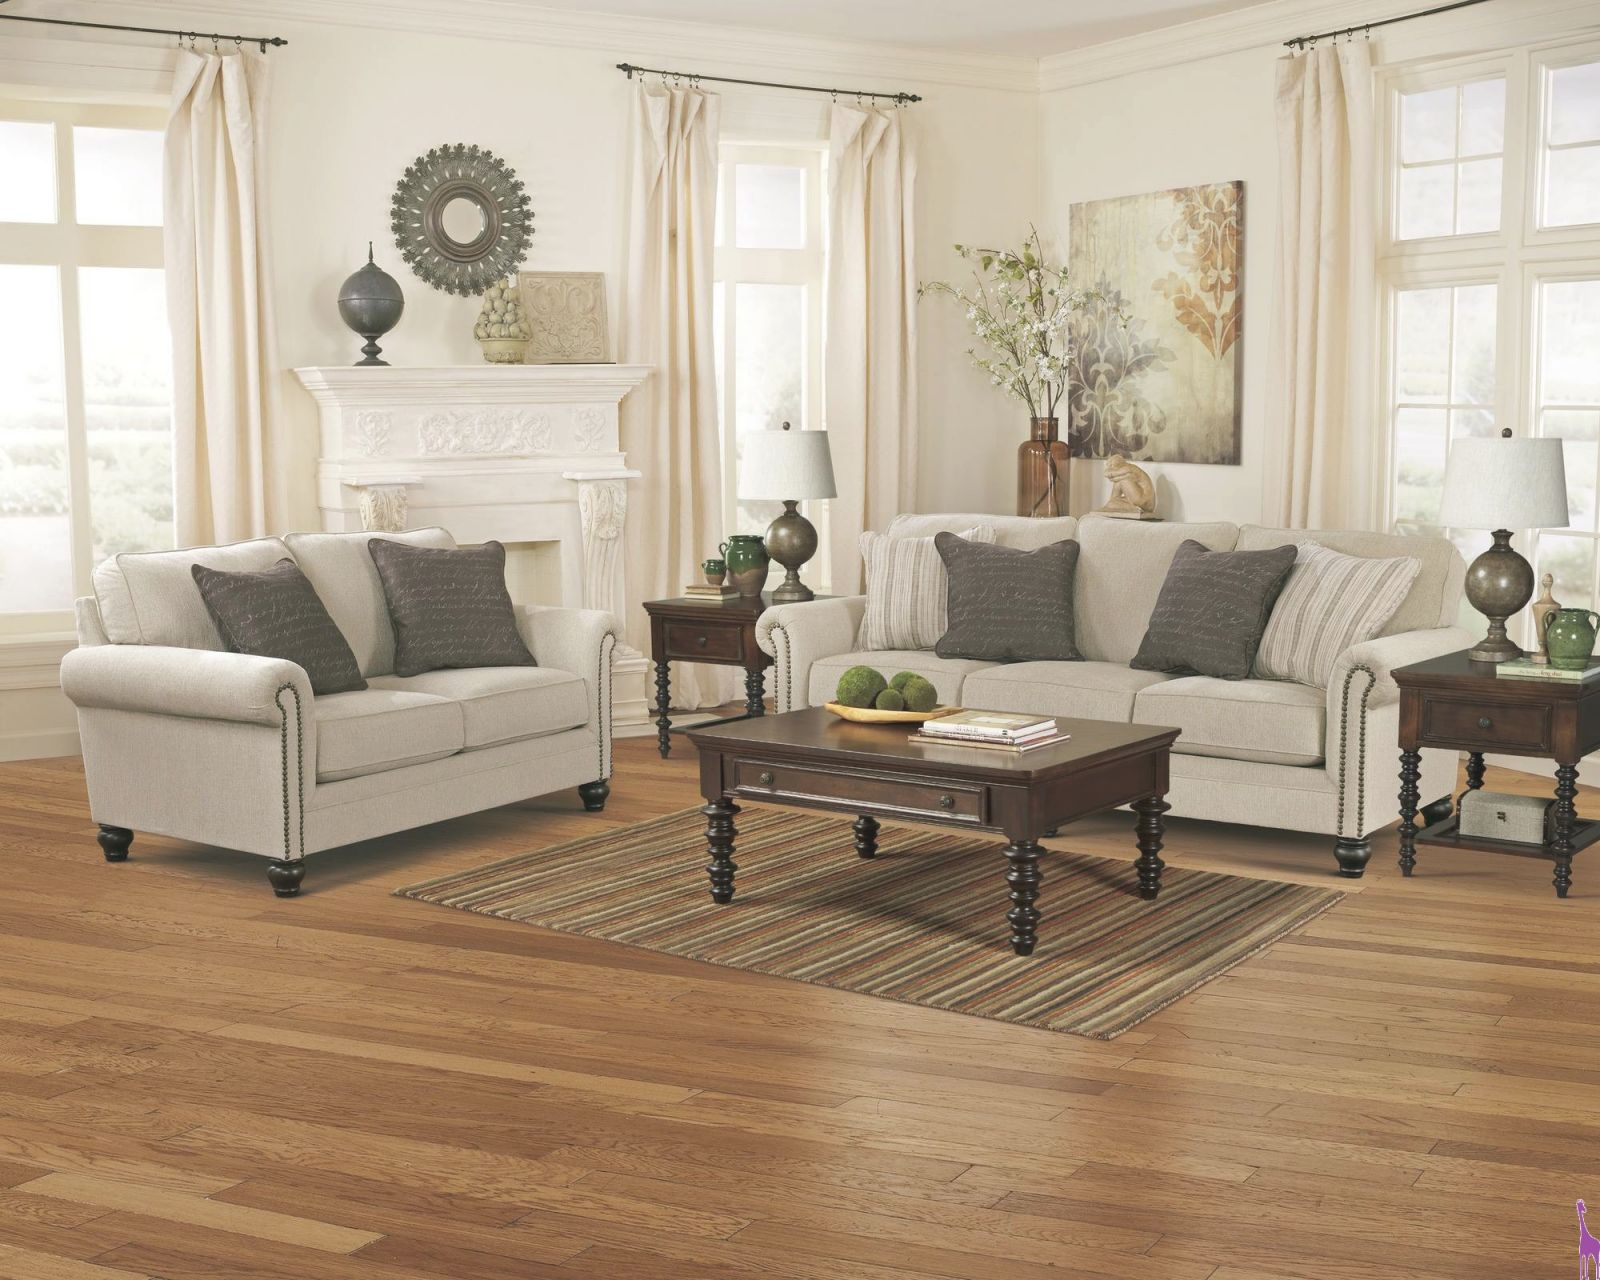 Lovely Living Room Sets Ashley Furniture - Awesome Decors